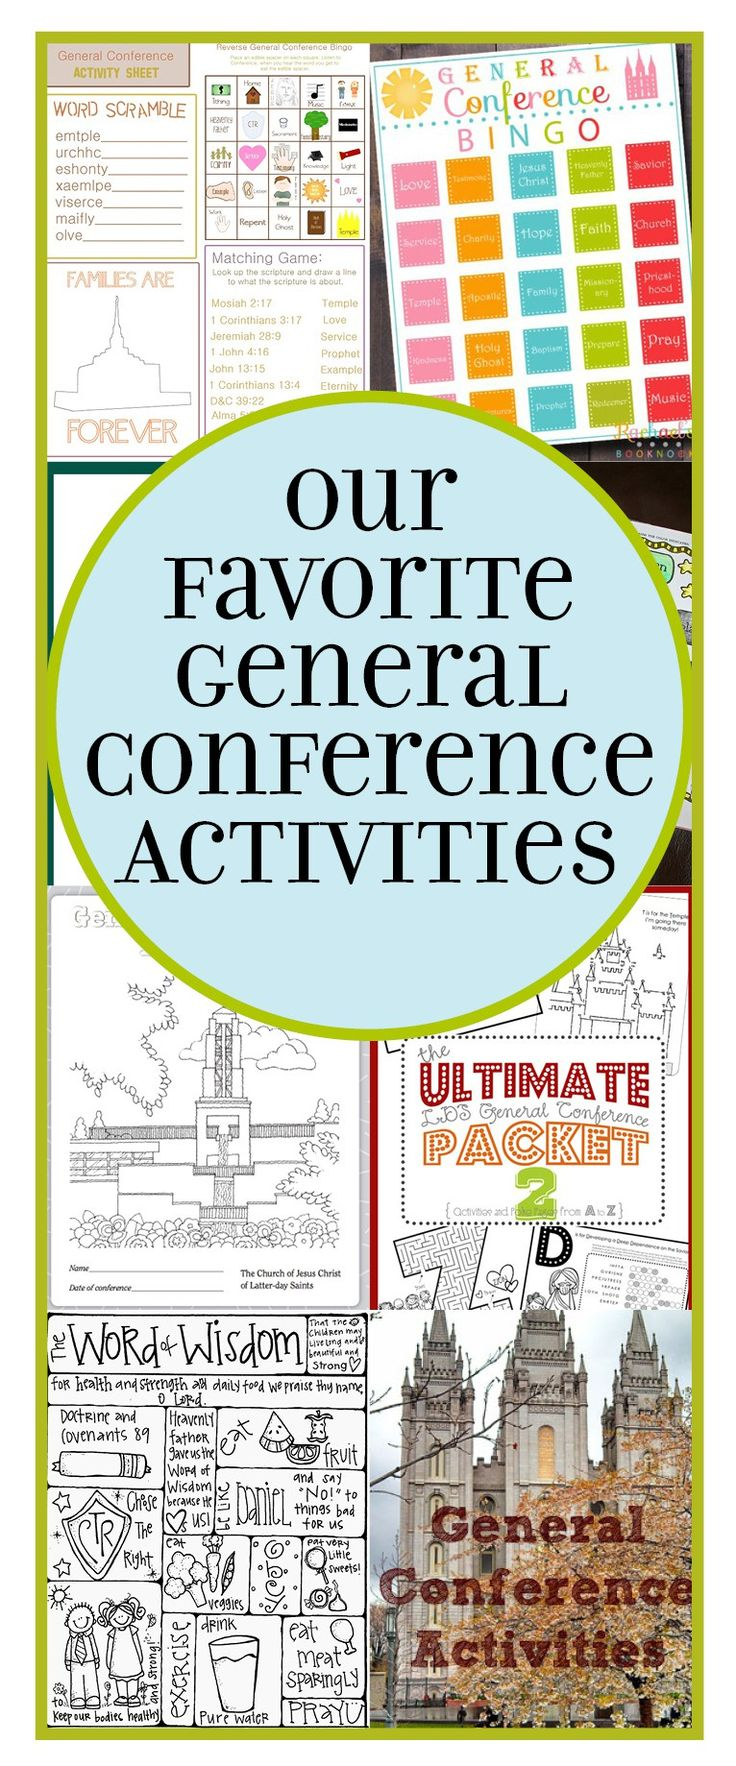 17 Best images about ☼ General Conference on Pinterest ...